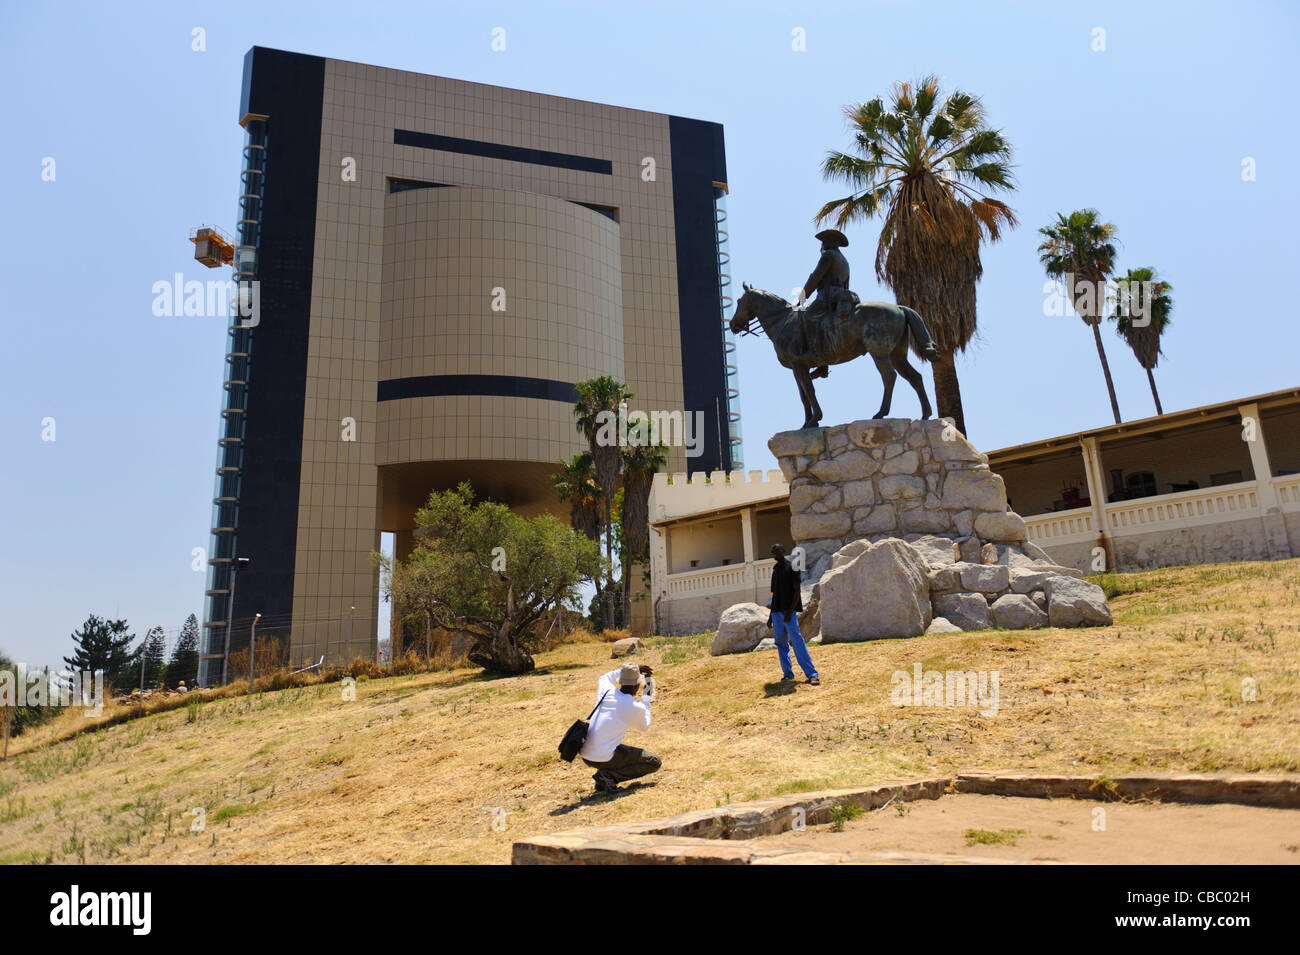 Disharmony in town-planning. A modern high rise building oppresses the historical relics in Windhoek, Namibia - Stock Image